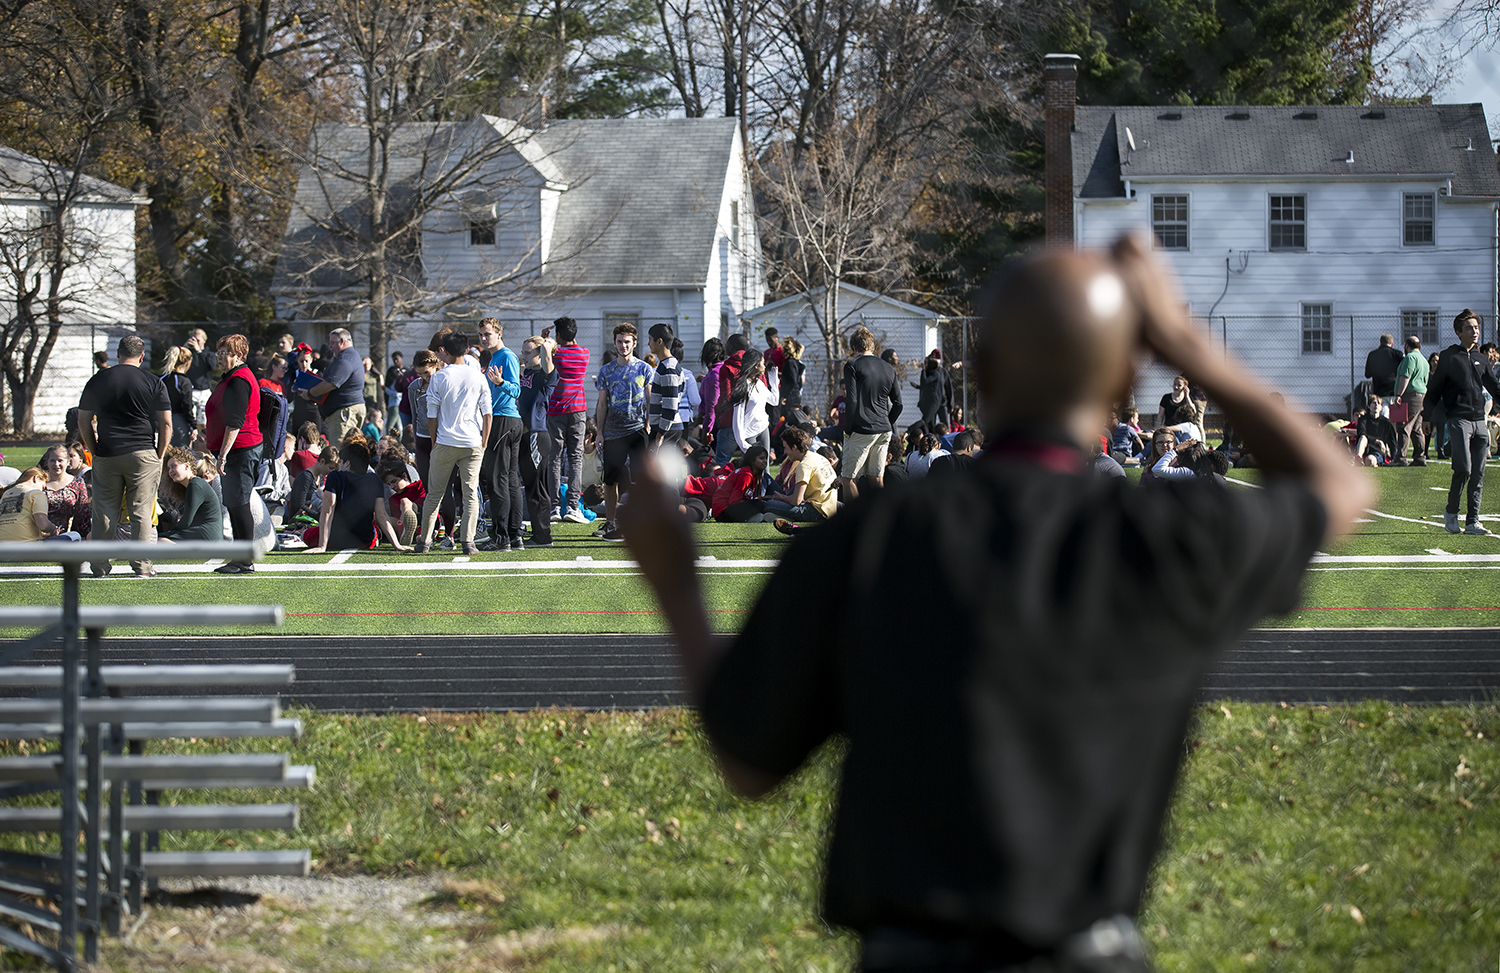 A man tries to pick out his son from among the Springfield High School students who were evacuated to the athletic field Nov. 28 after a bomb threat was called in to the school. Rich Saal/The State Journal-Register